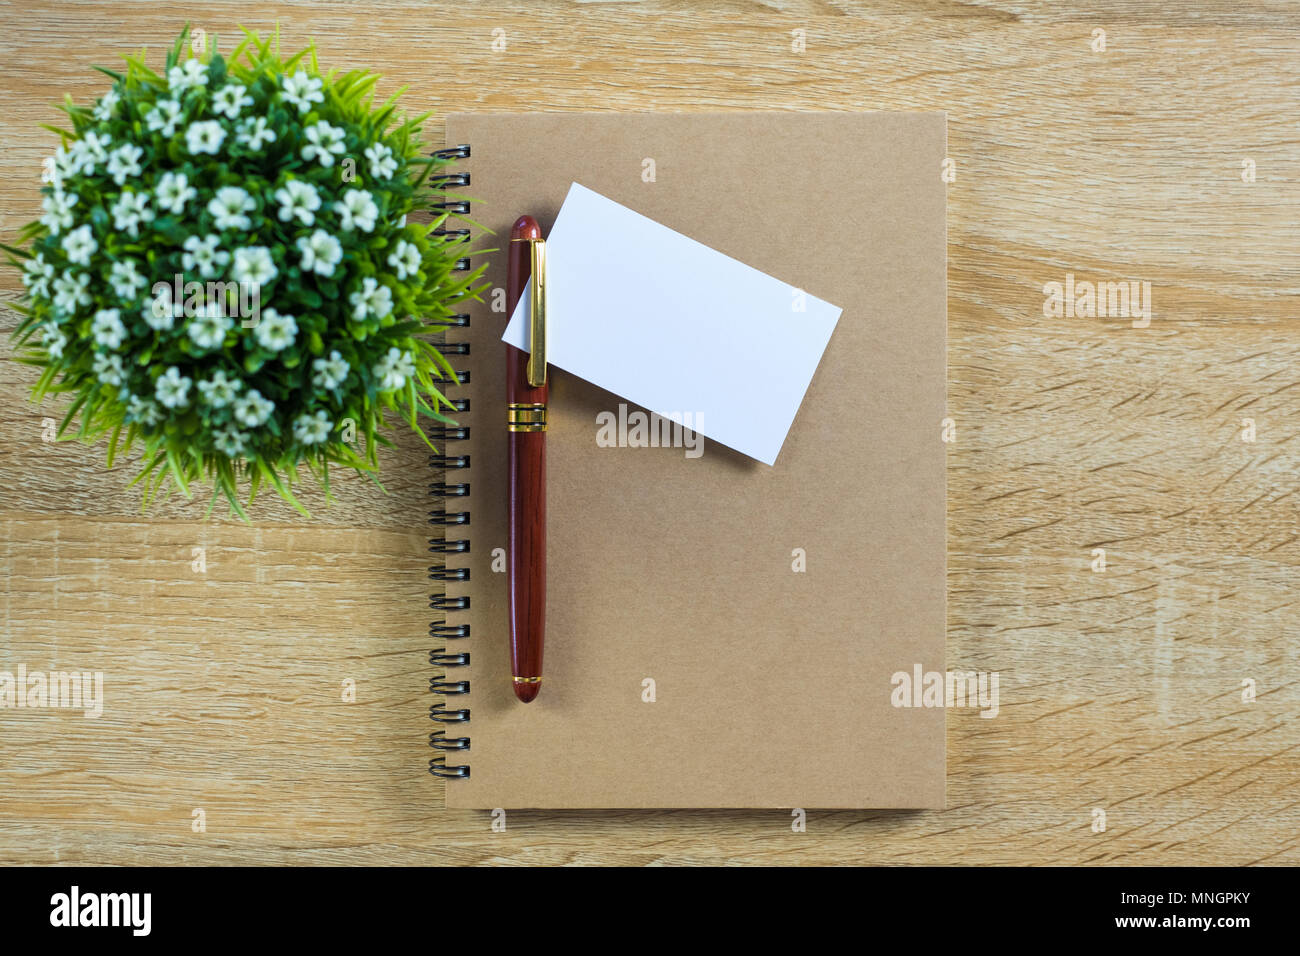 Blank business card or name card with space for add text name blank business card or name card with space for add text name address and logo with notebook organizer on working table financial company concept ide colourmoves